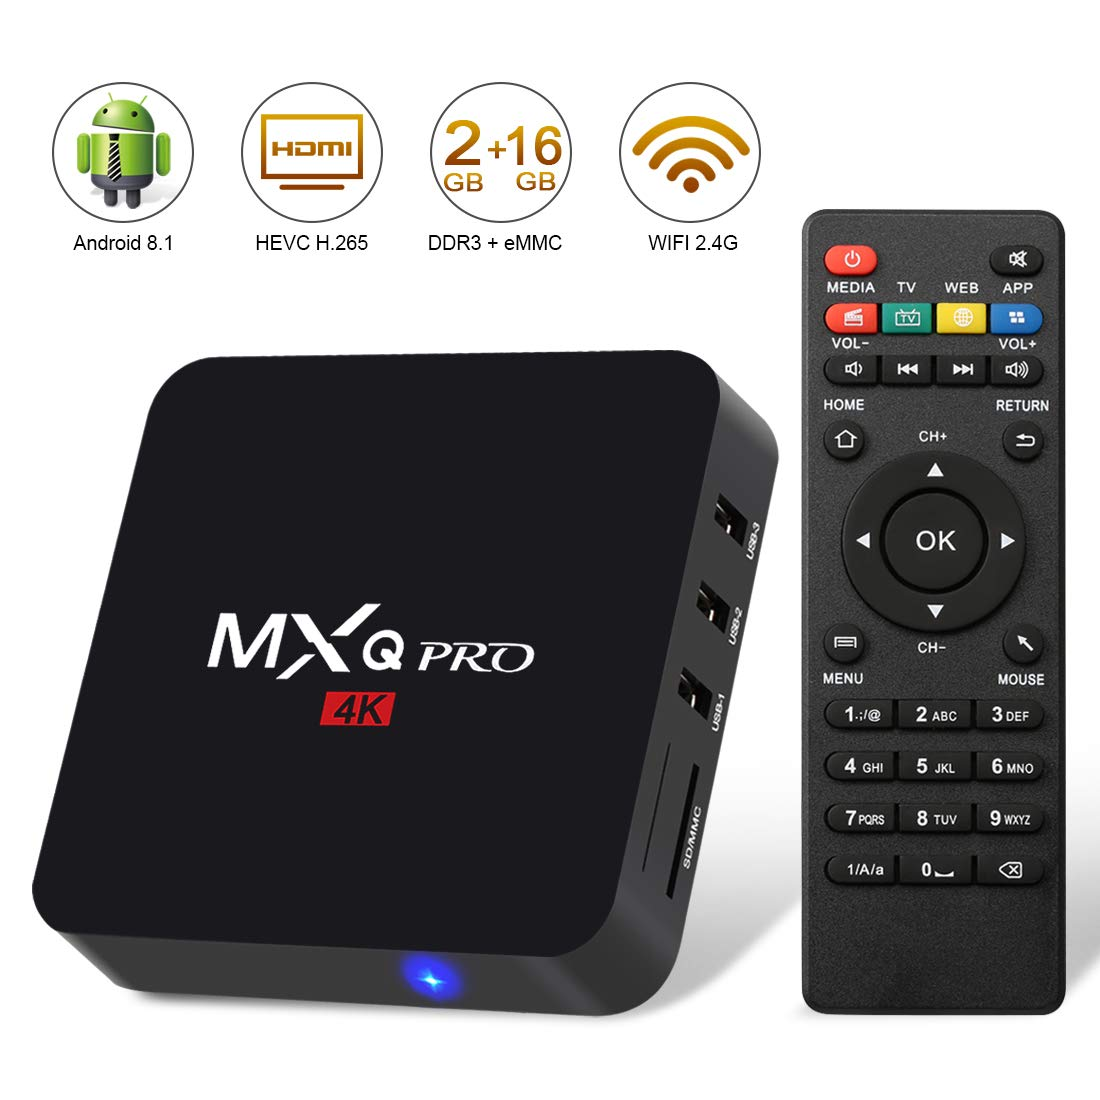 Android 8 1 TV Box,2019 Update Edition Leelbox MXQ PRO Smart Android TV Box  2GB RAM 16GB ROM Quad Core Supporting 4K (60Hz) Full HD/H 265/WiFi